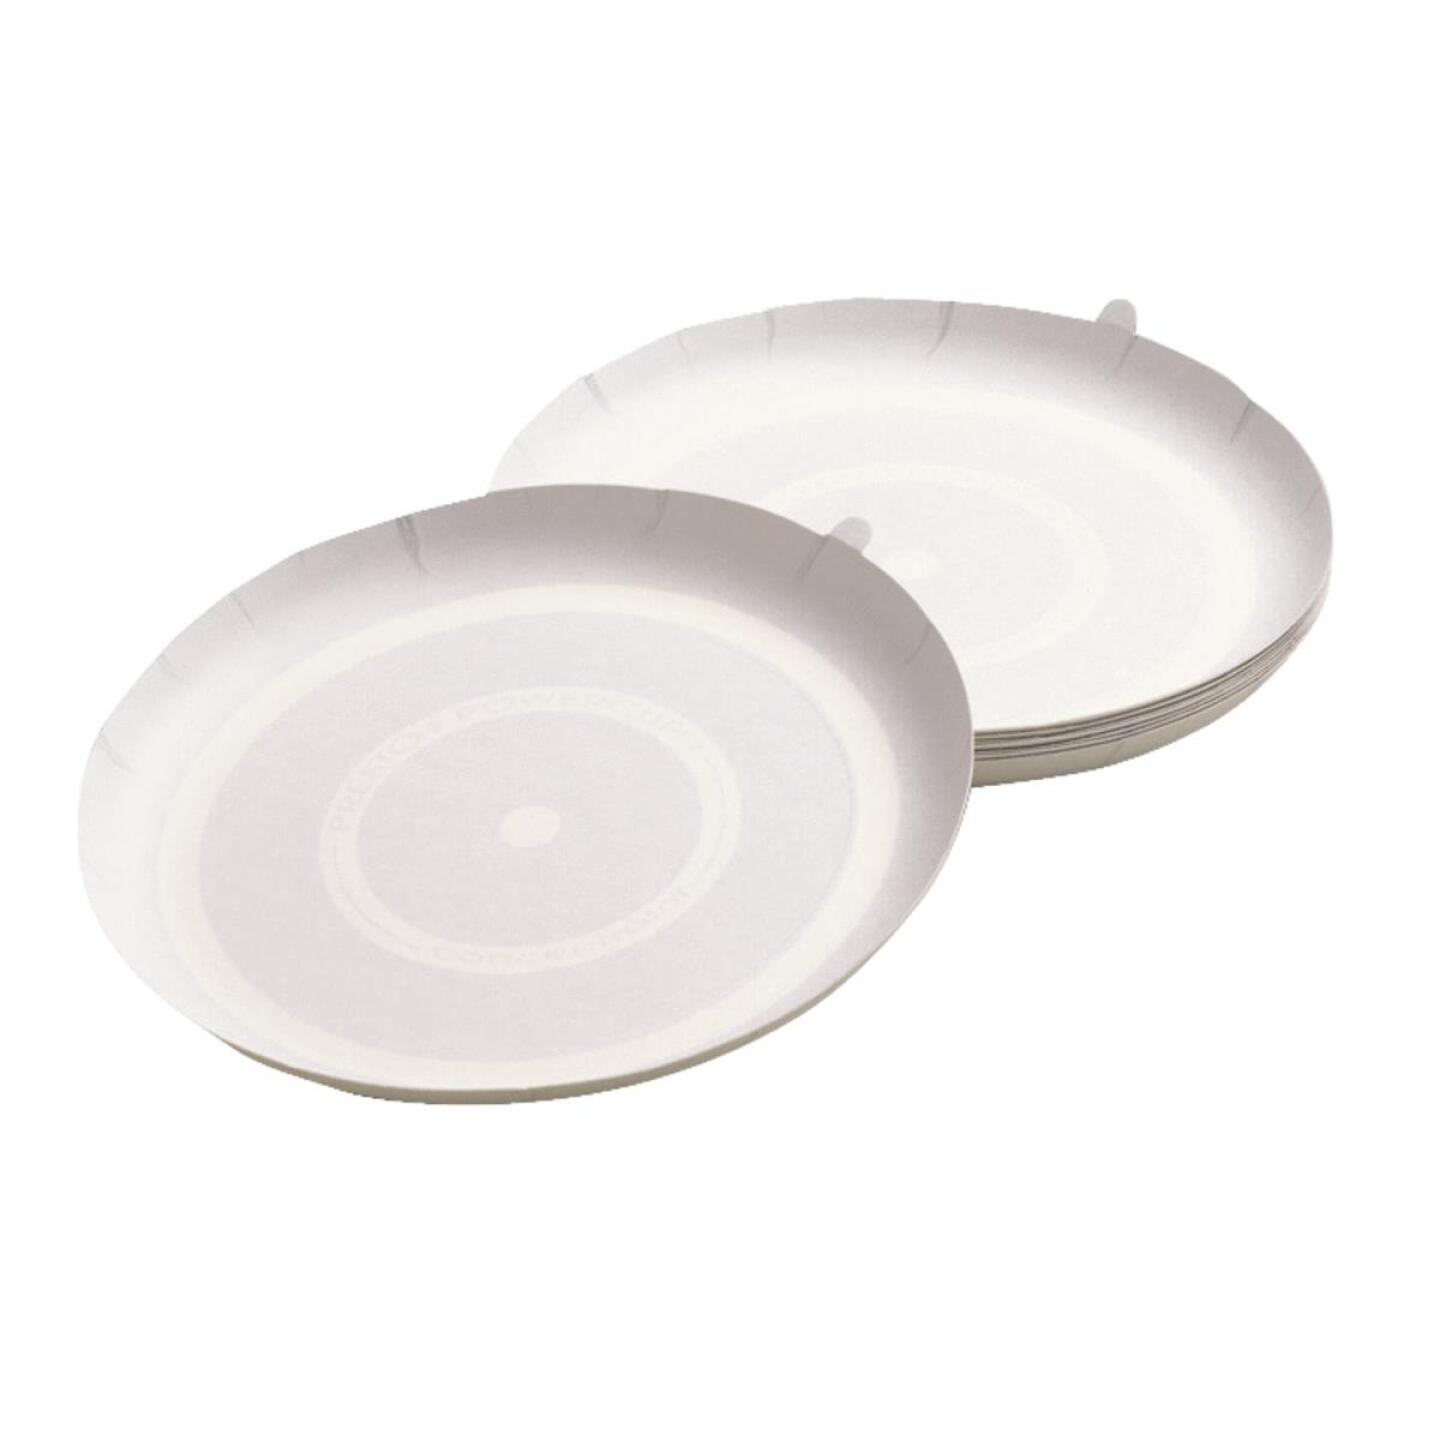 Presto Powerpop White Replacement Power Cups Image 1